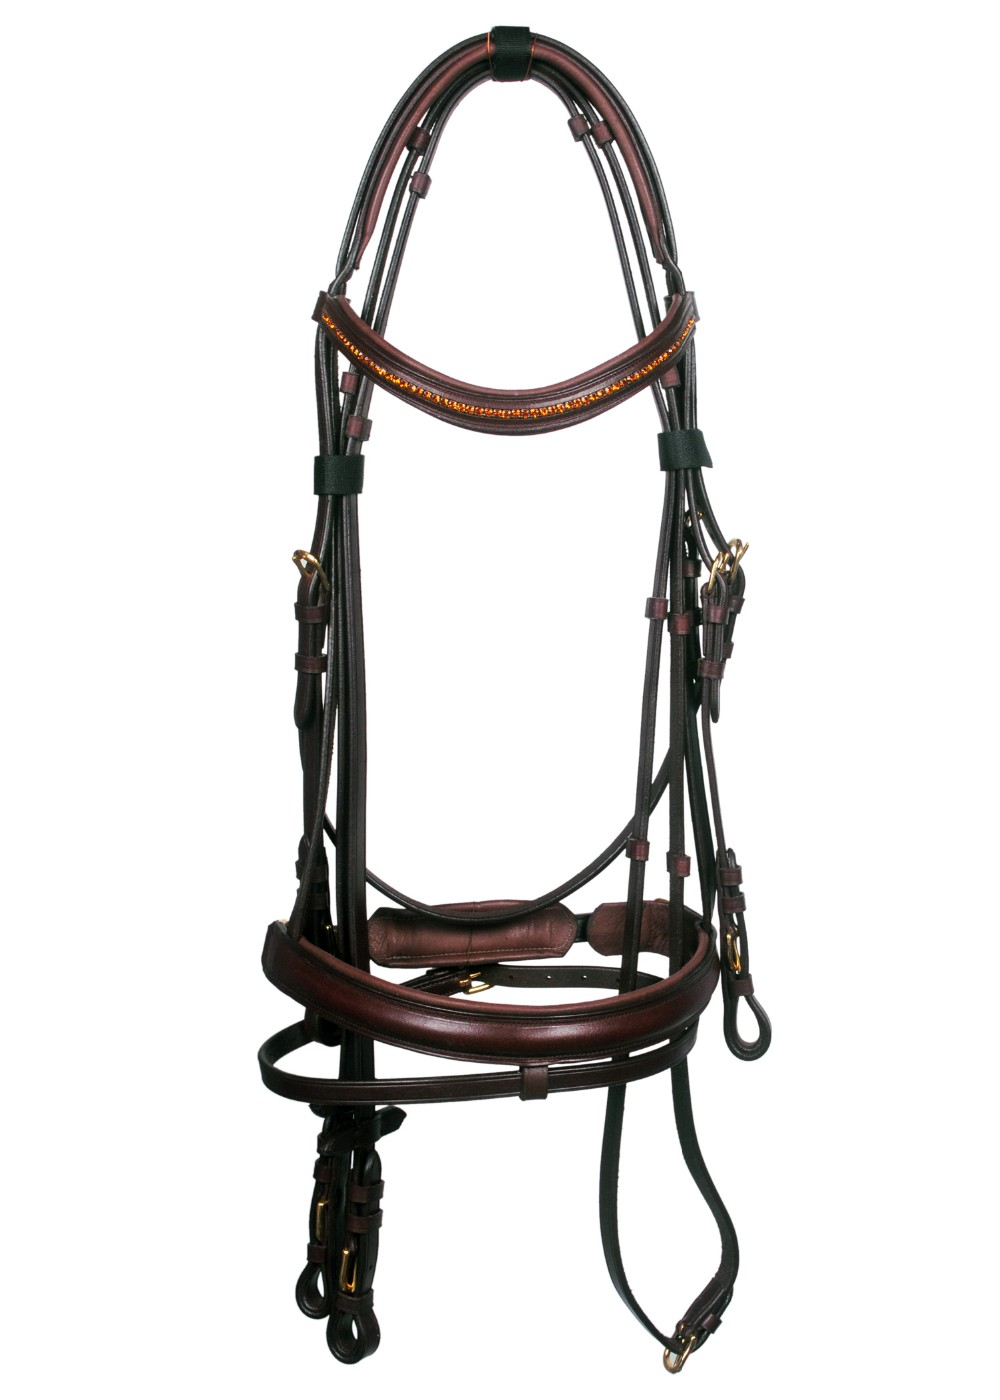 Buy New Online Nice Looking Comfortable Braided Decorative Horse Bridle